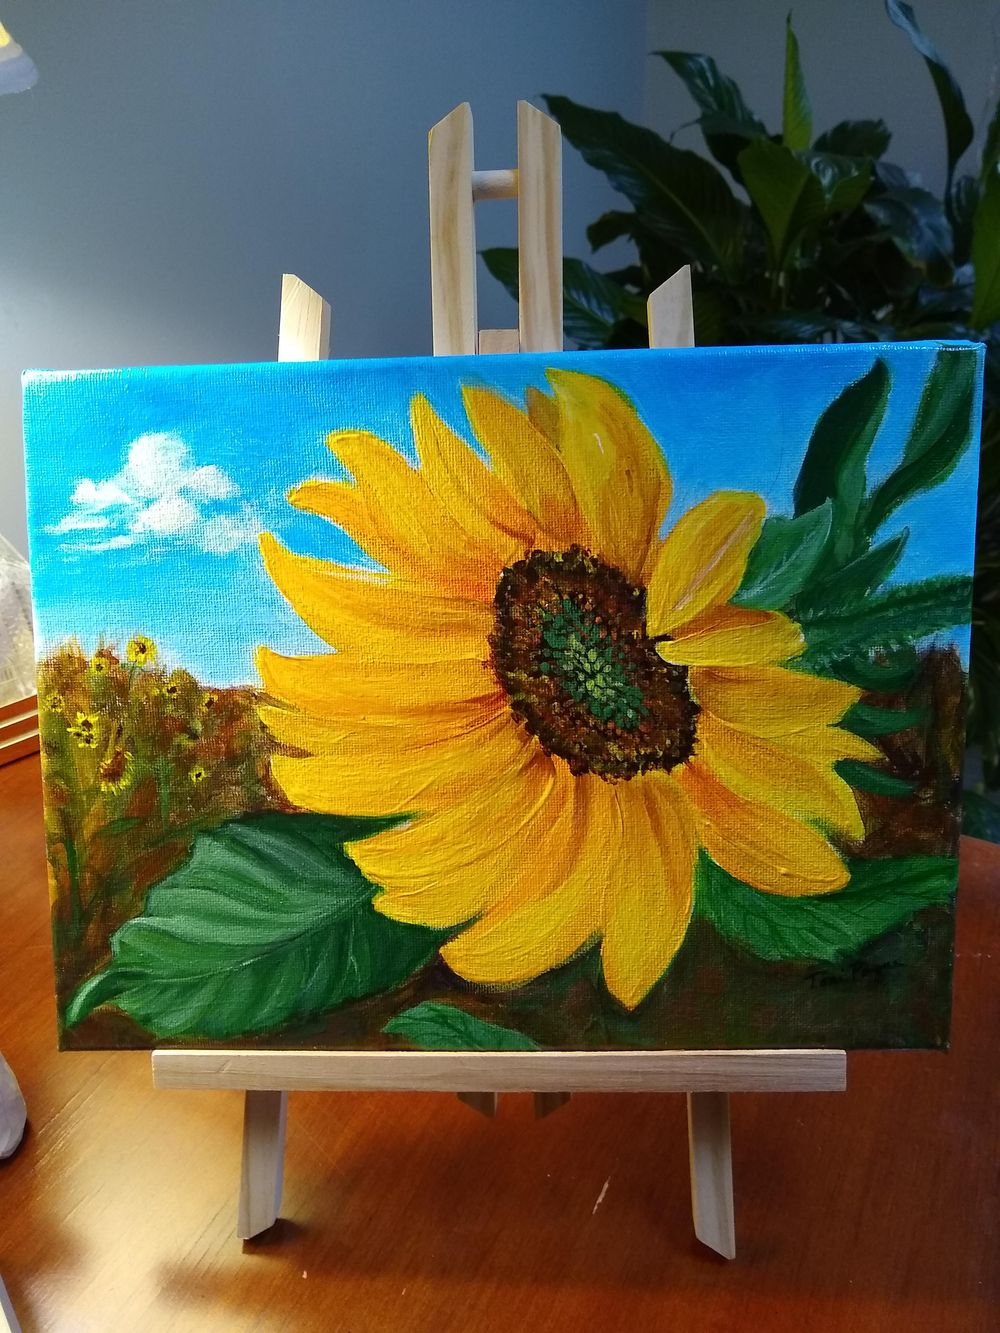 Sunflower Paintings - image 2 - student project